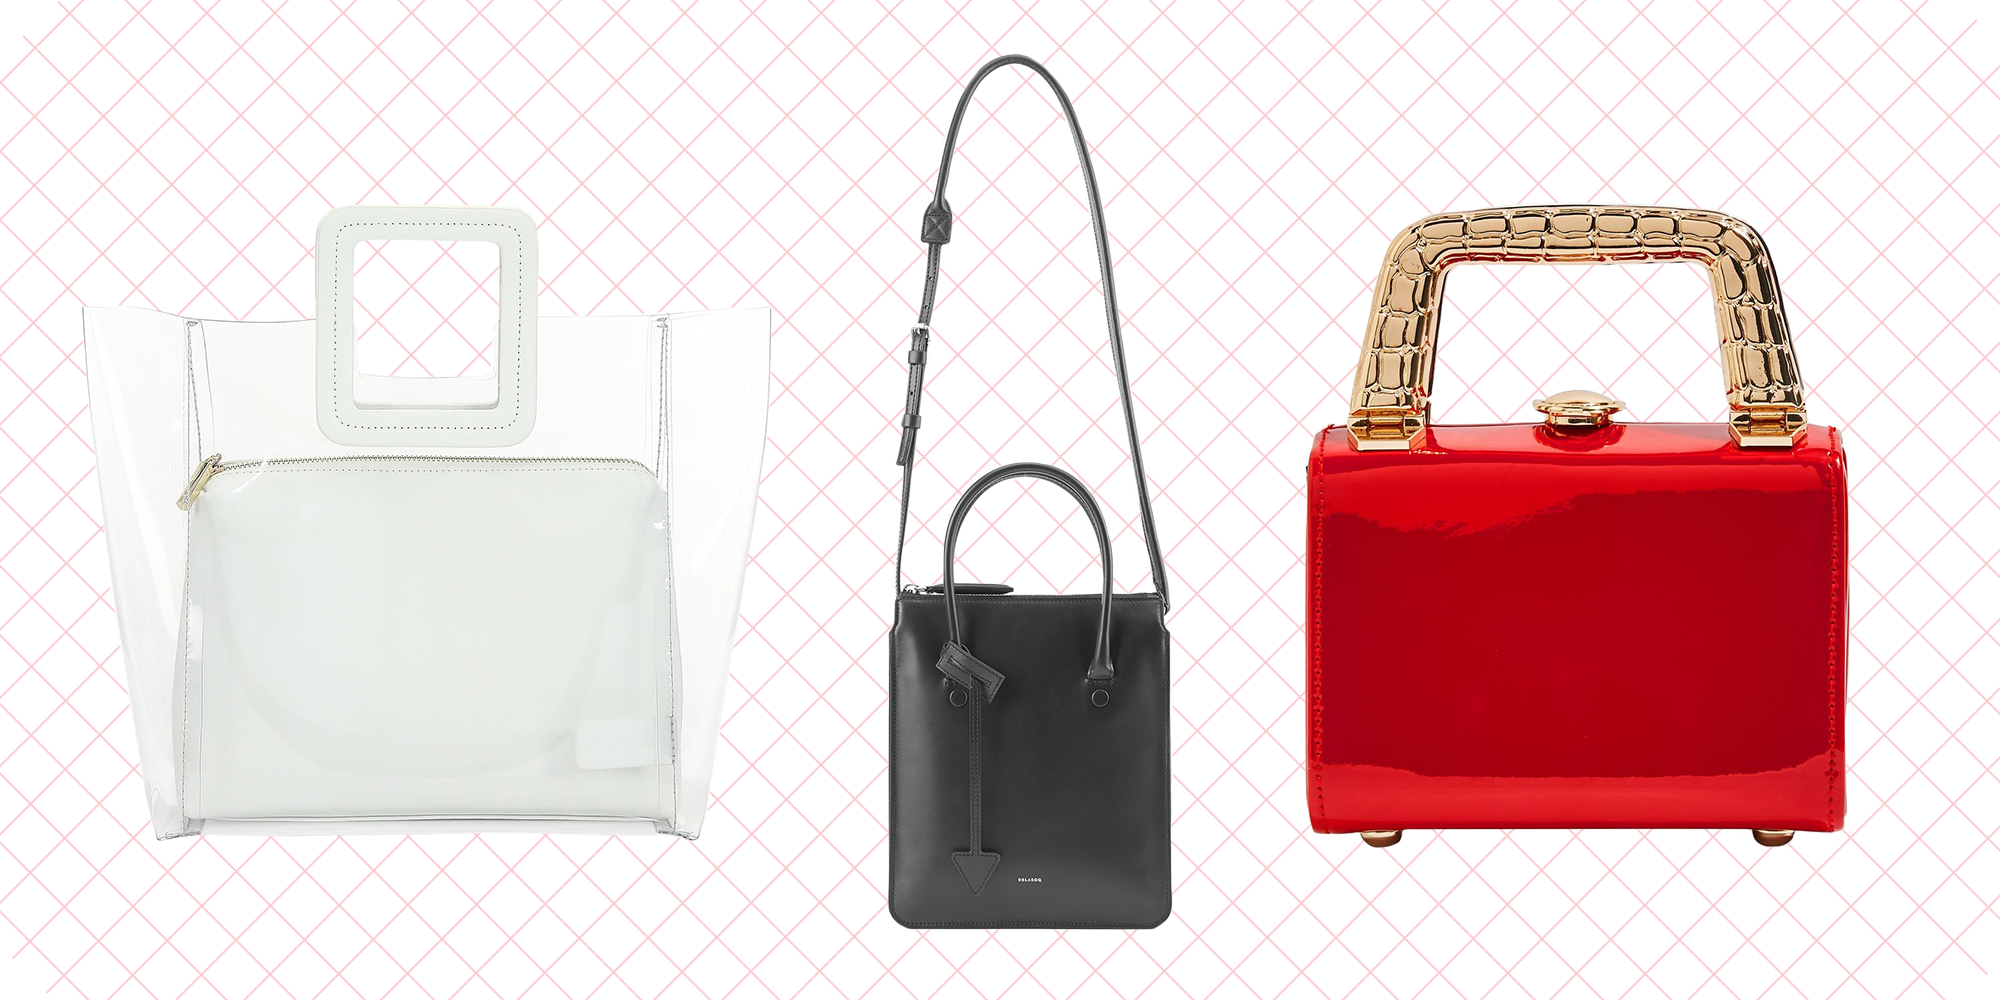 91322f7dff Best Handbags of 2018 So Far - Top Purse Trends of the Year